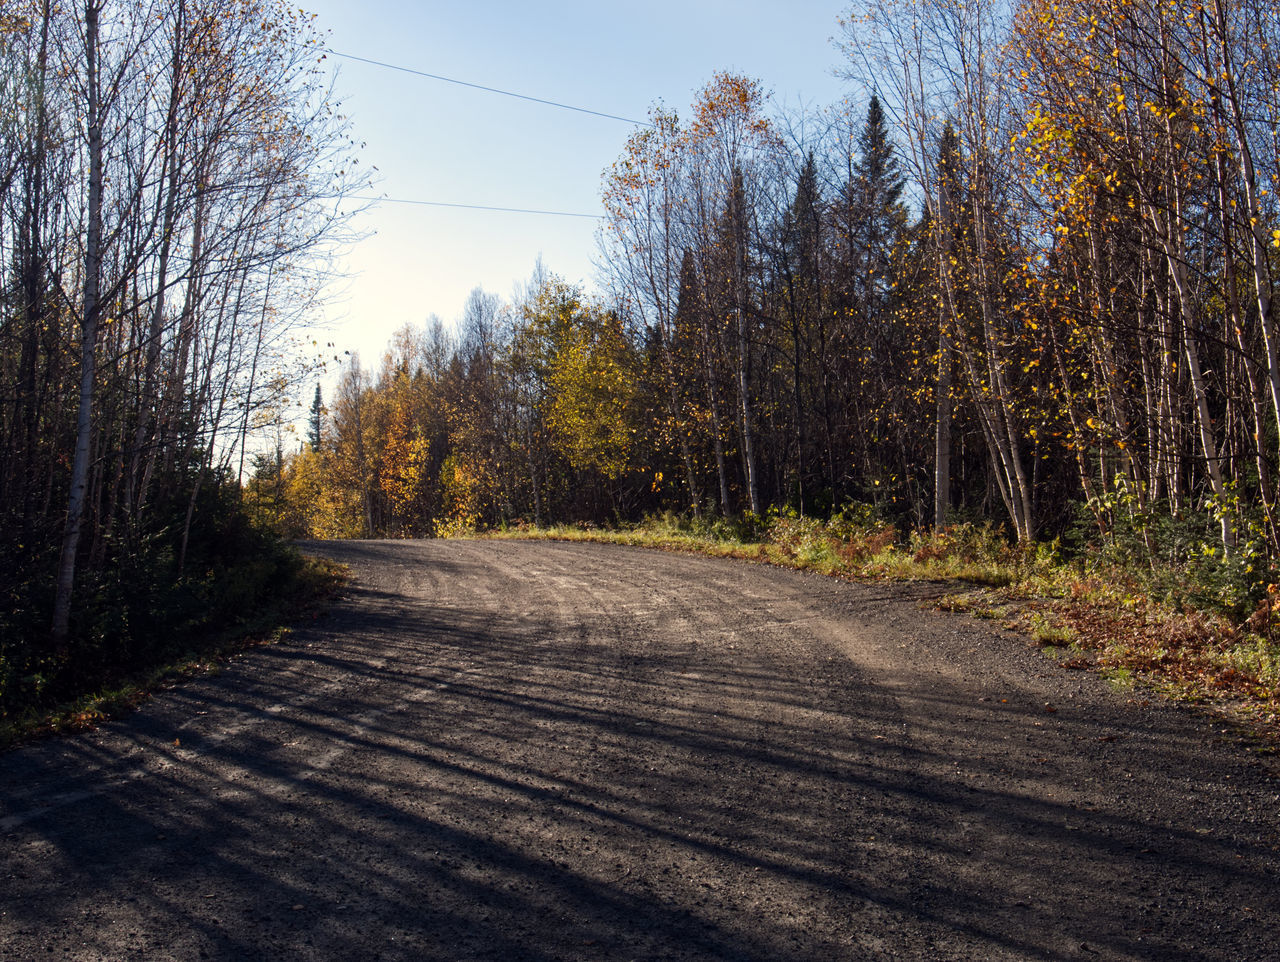 SURFACE LEVEL OF ROAD AMIDST TREES DURING AUTUMN